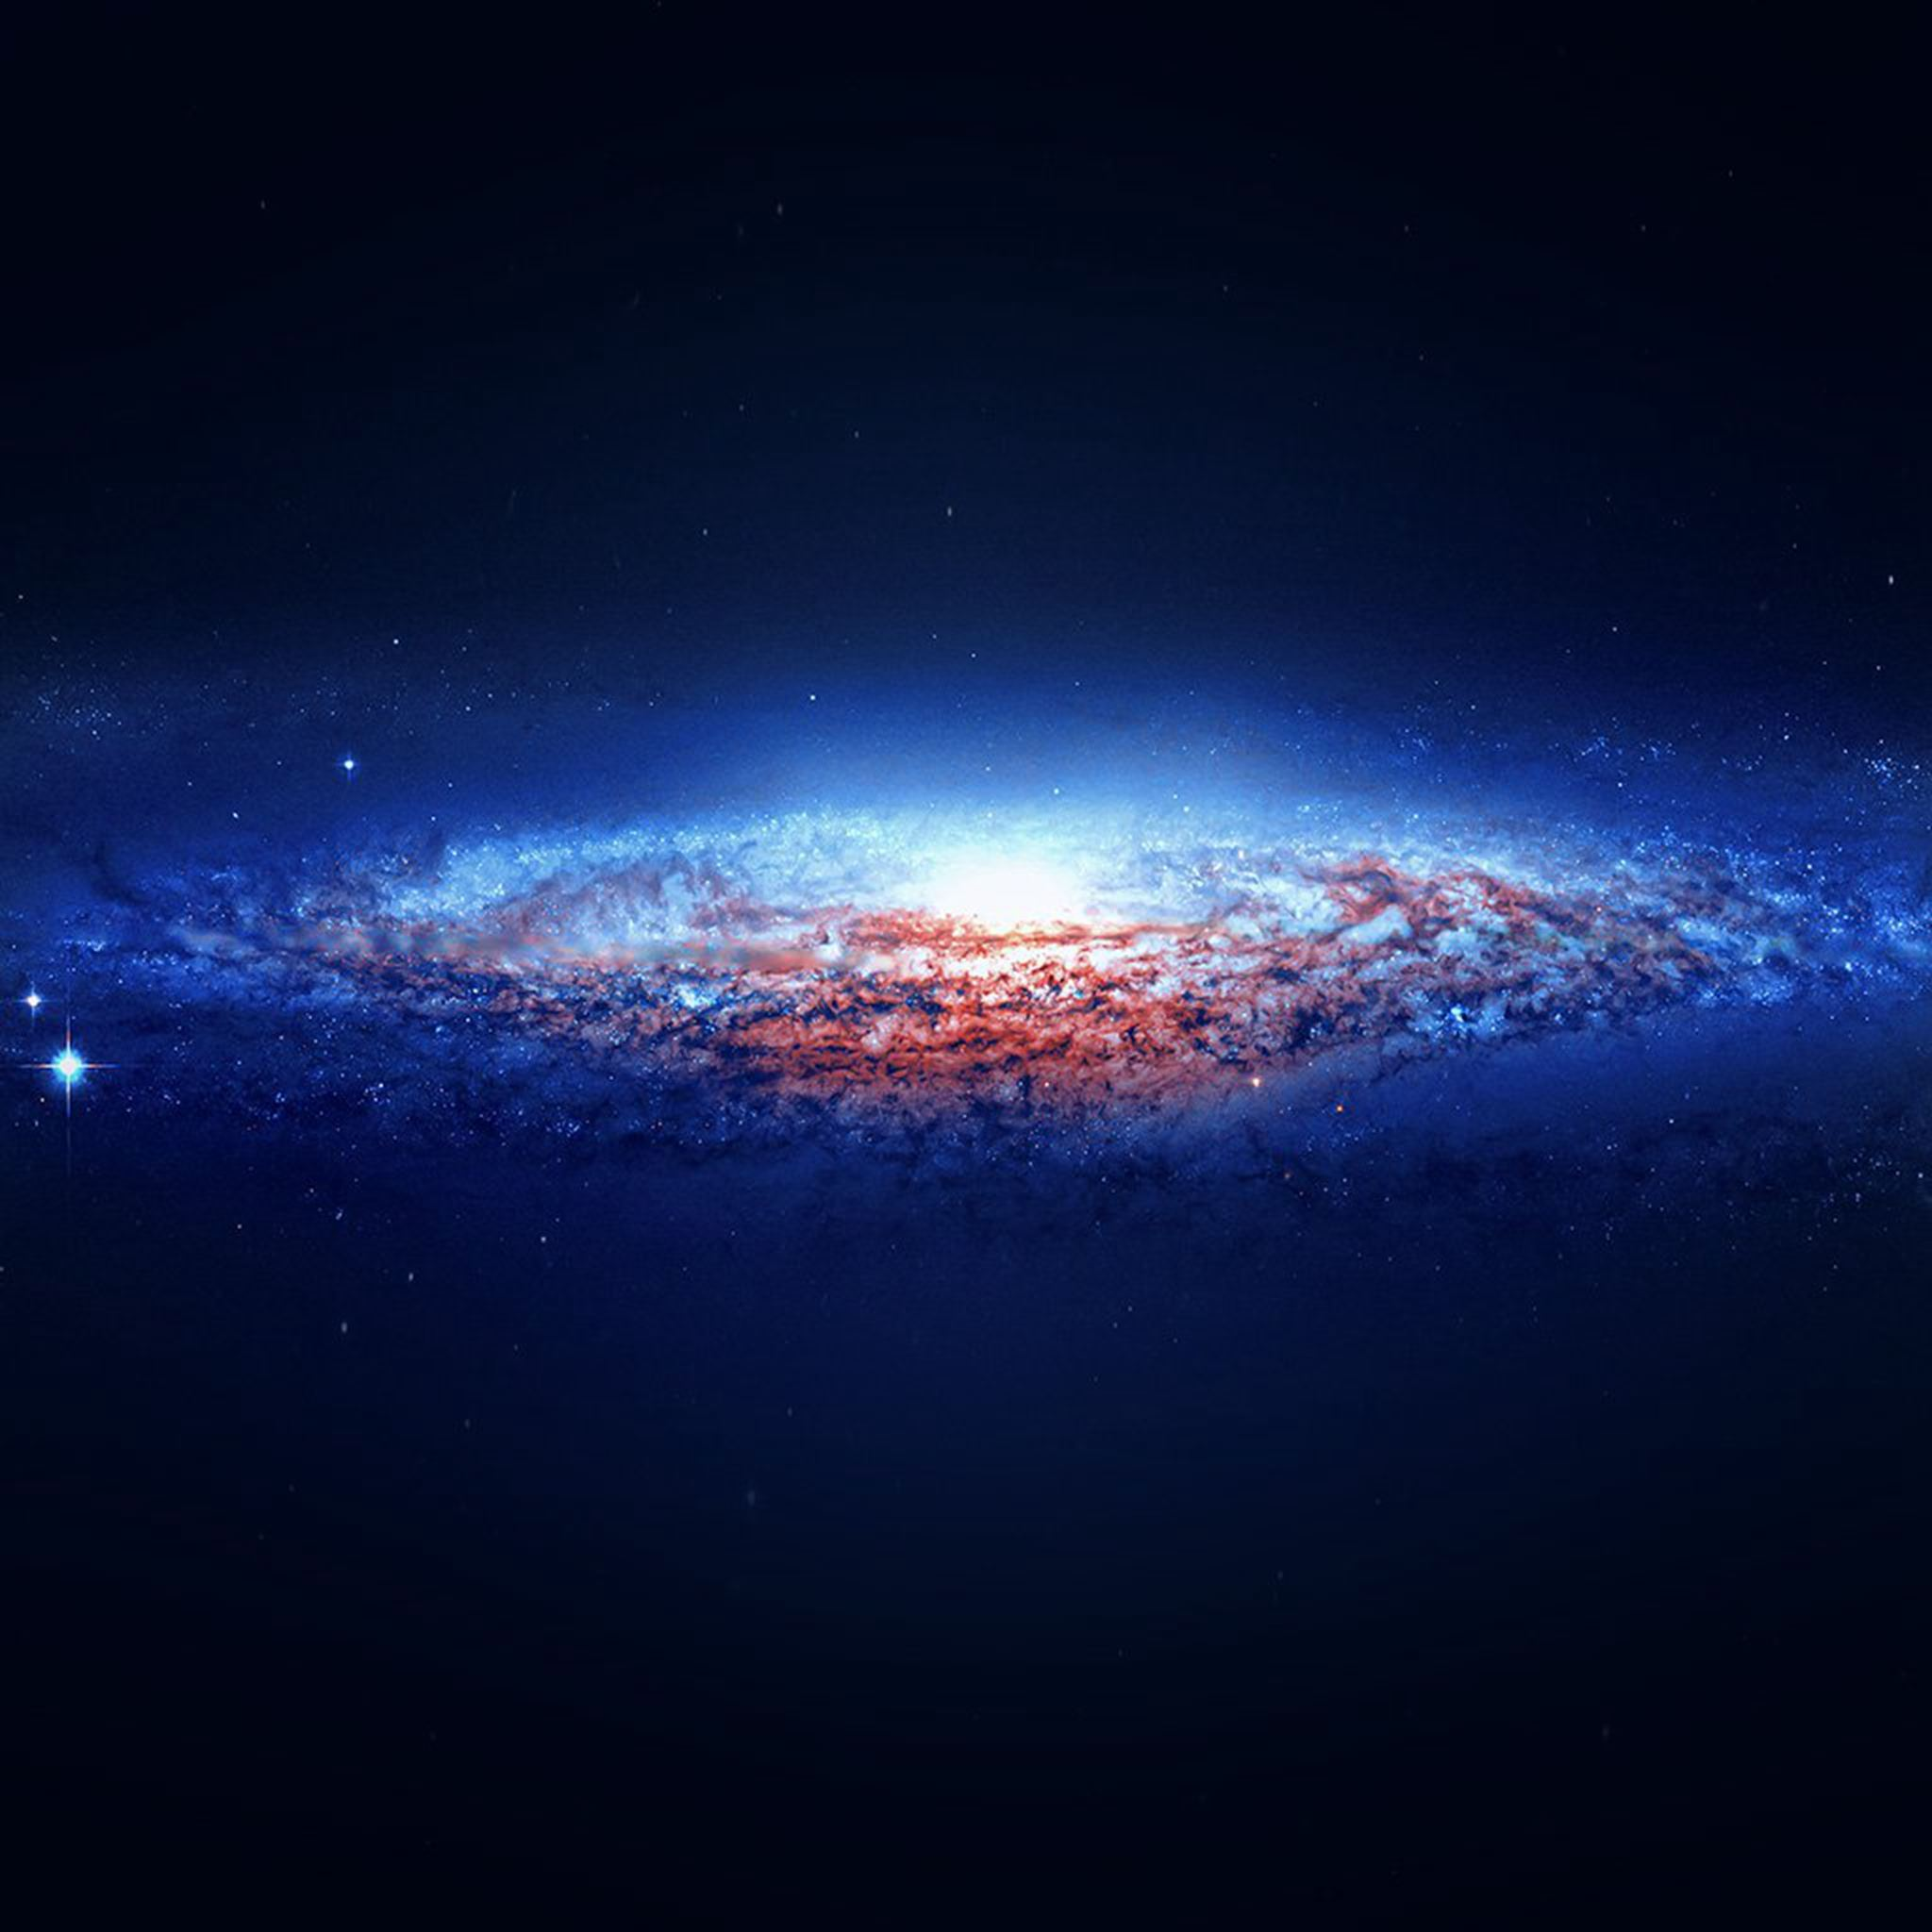 Galaxy Space Show Edge S6 Nature IPad Air Wallpapers Free